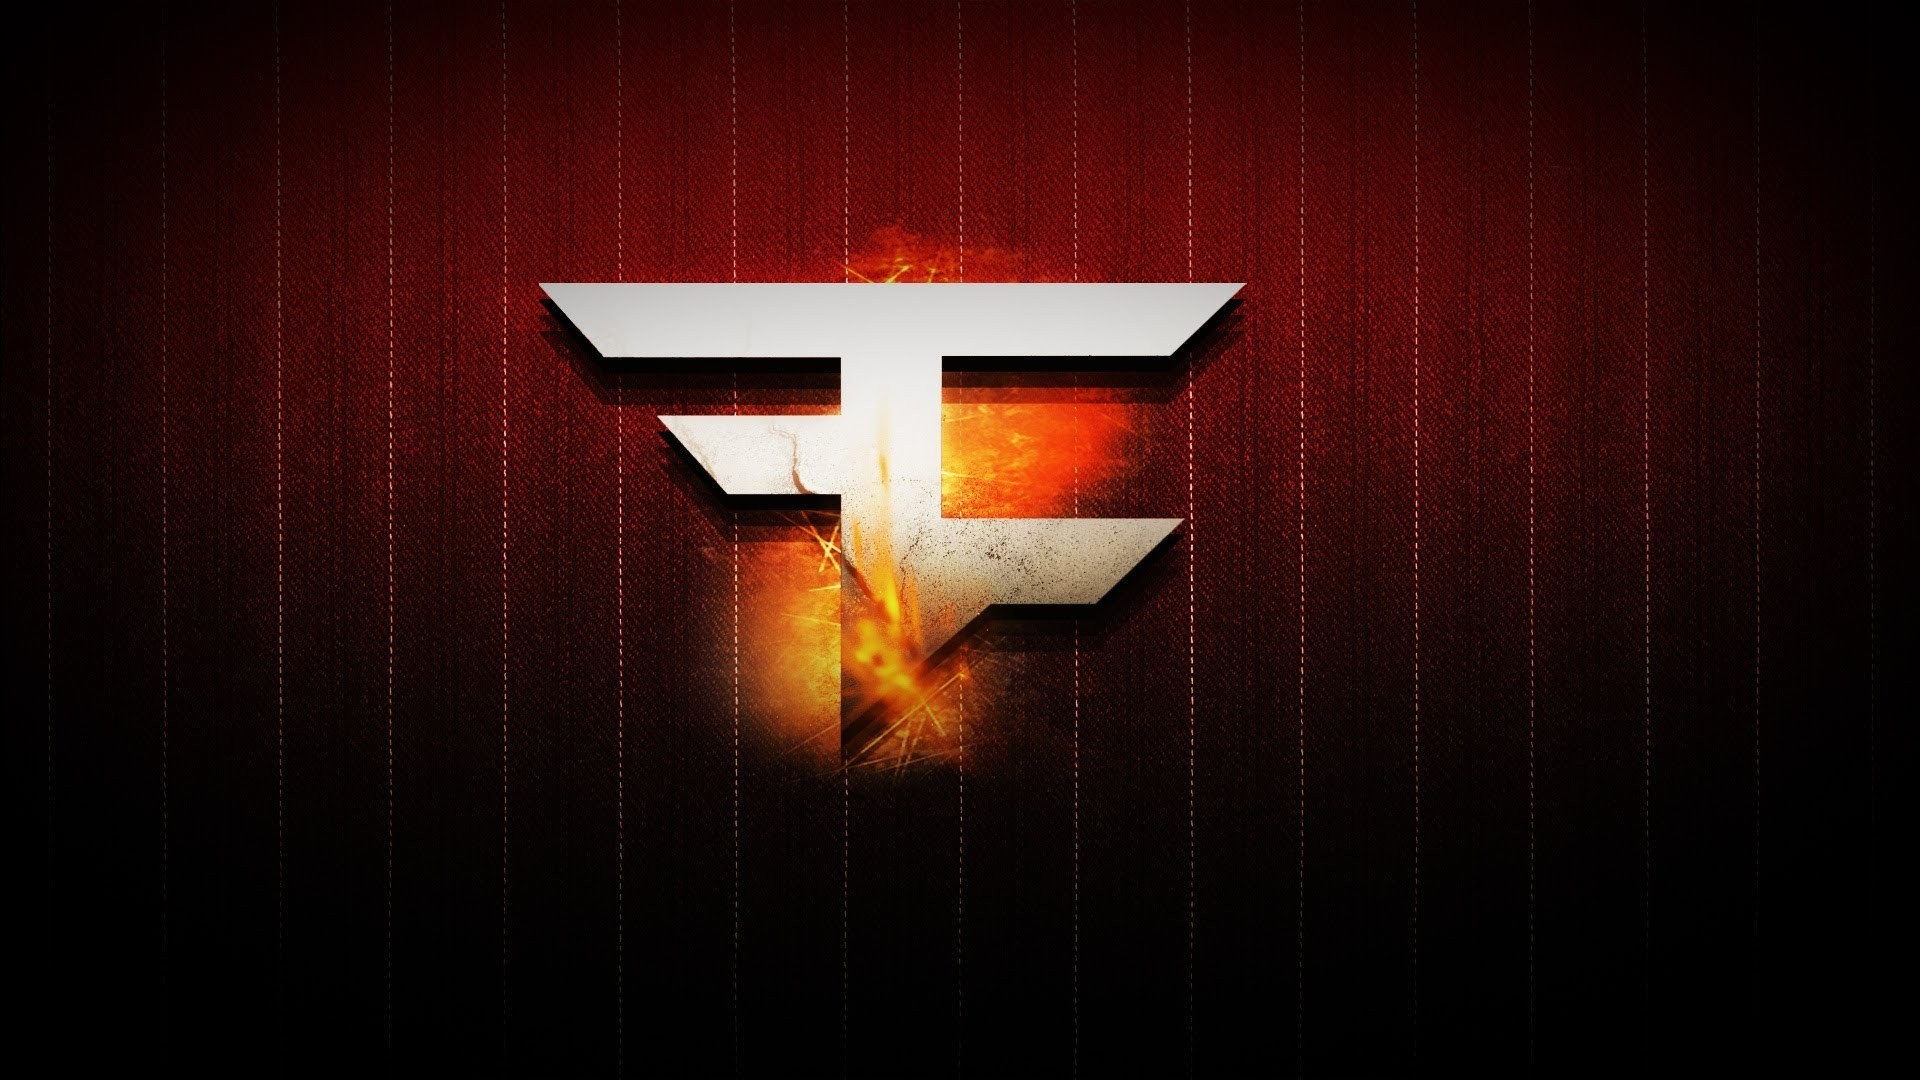 … Perfect Faze Logo Wallpaper Free Wallpaper For Desktop and Mobile in  All Resolutions Free Download Best